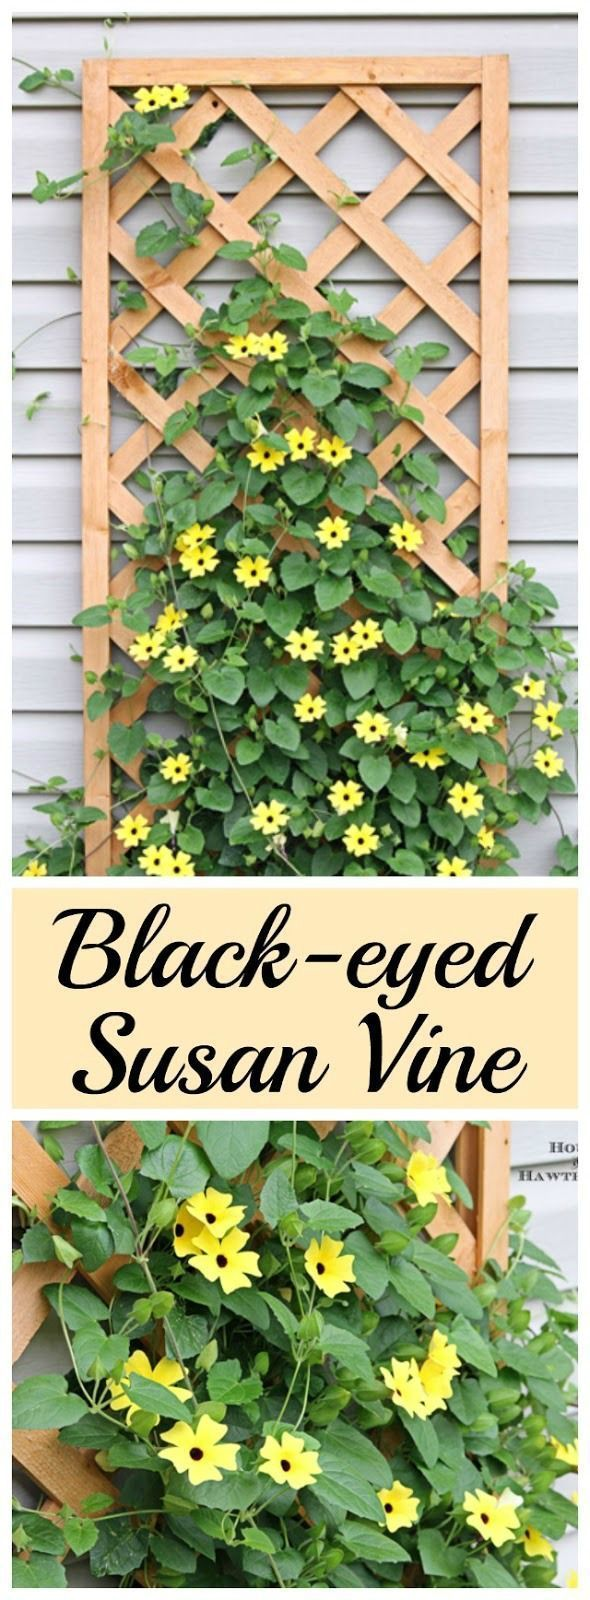 Best DIY Projects: Black-eyed Susan vine - you must plant one of these in your garden this year - its the vine that keeps going strong all summer long